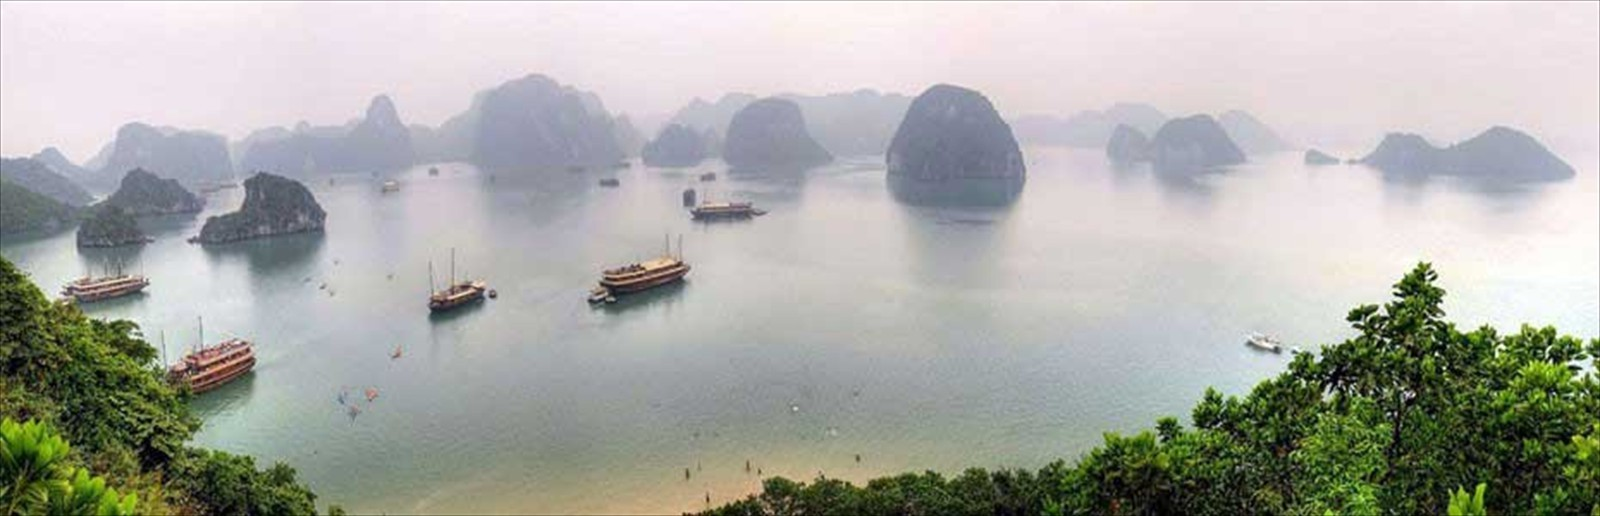 Connect with the World - Halong Bay, Vietnam